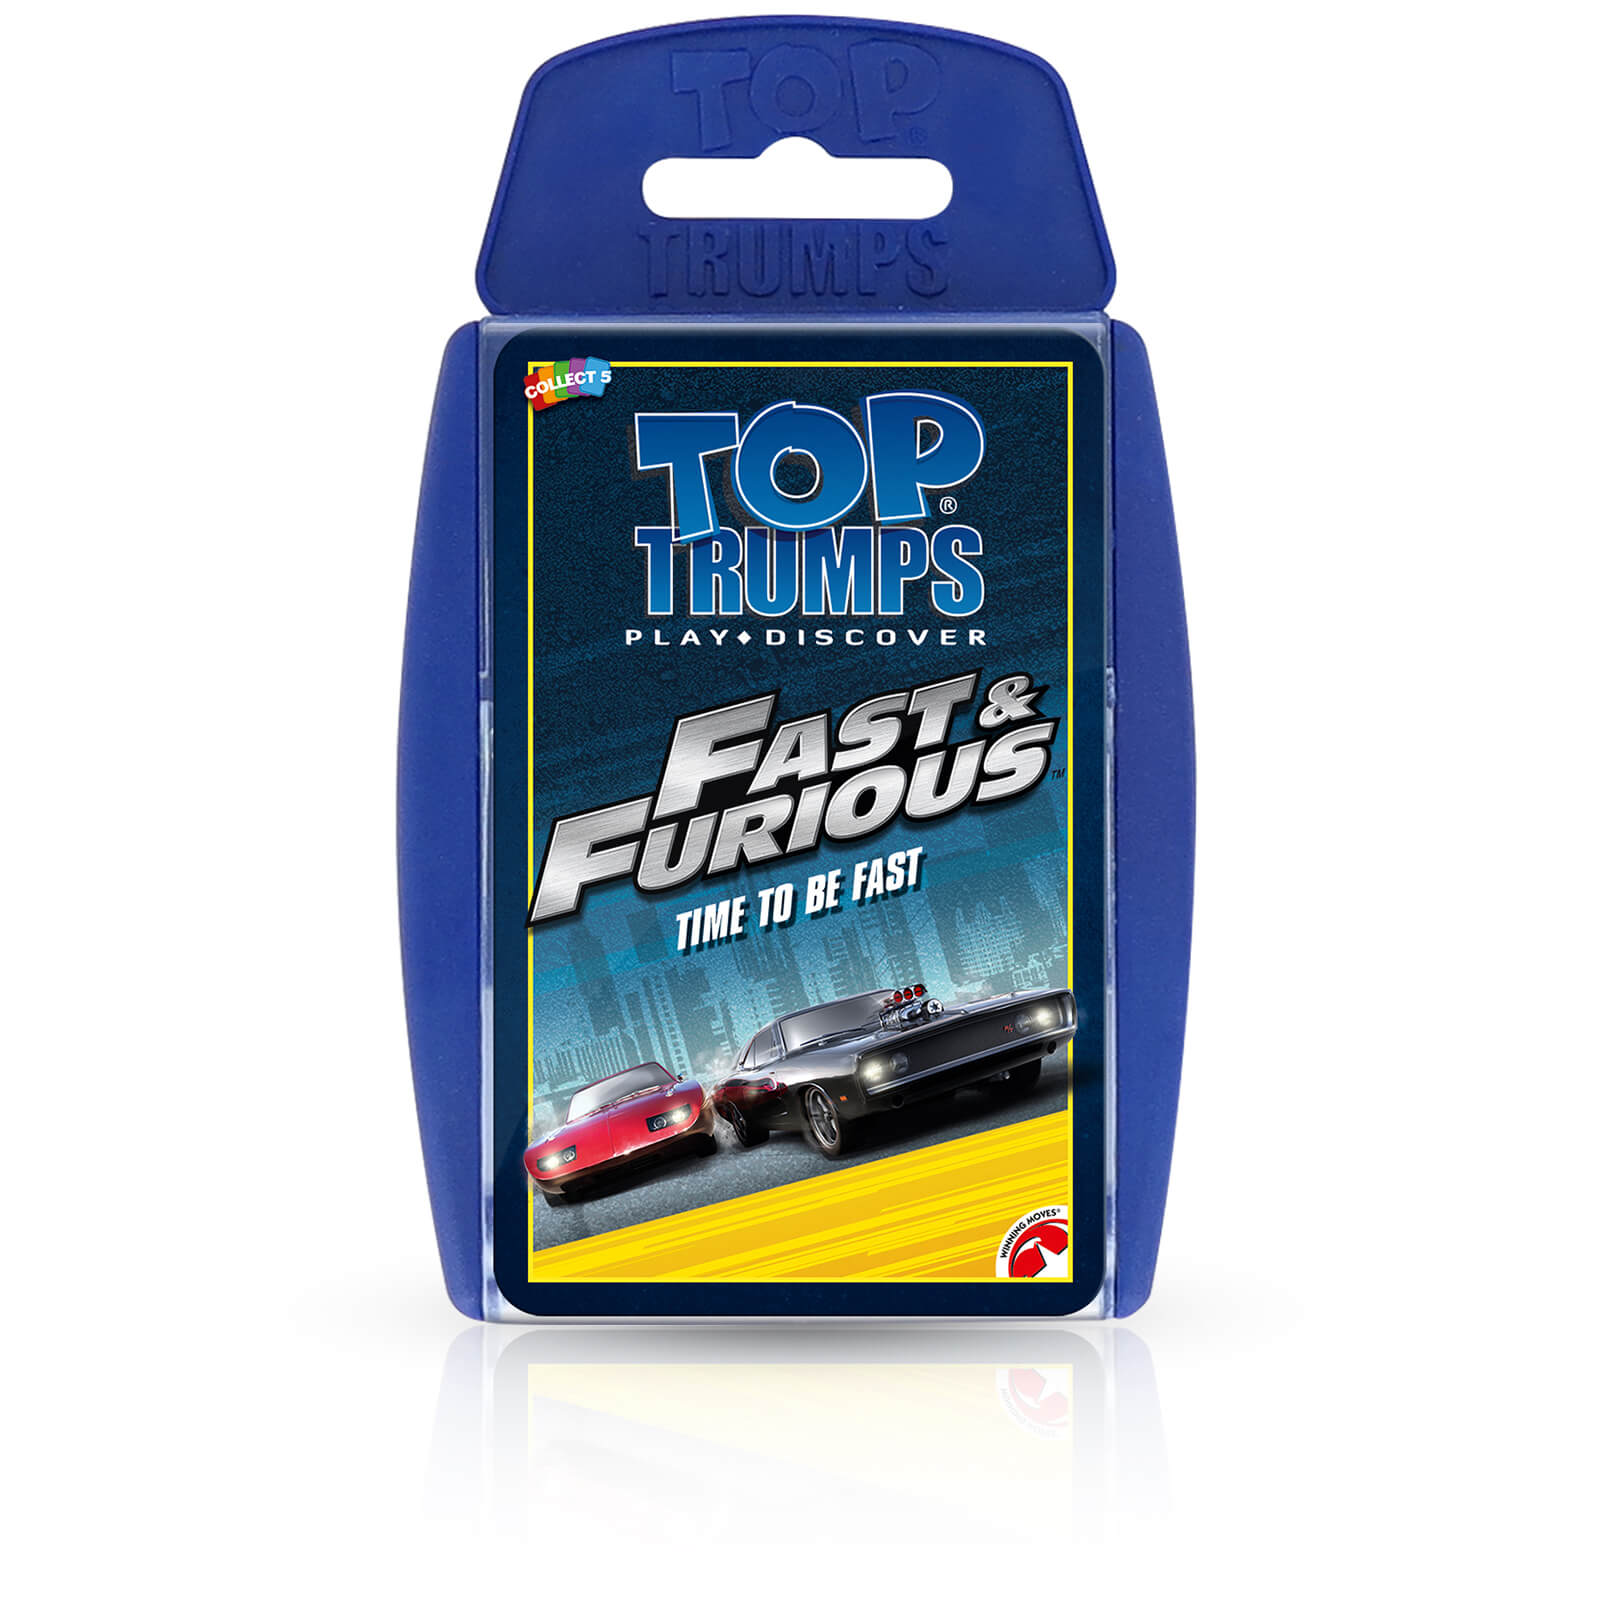 Image of Top Trumps Card Game - Fast & Furious Edition